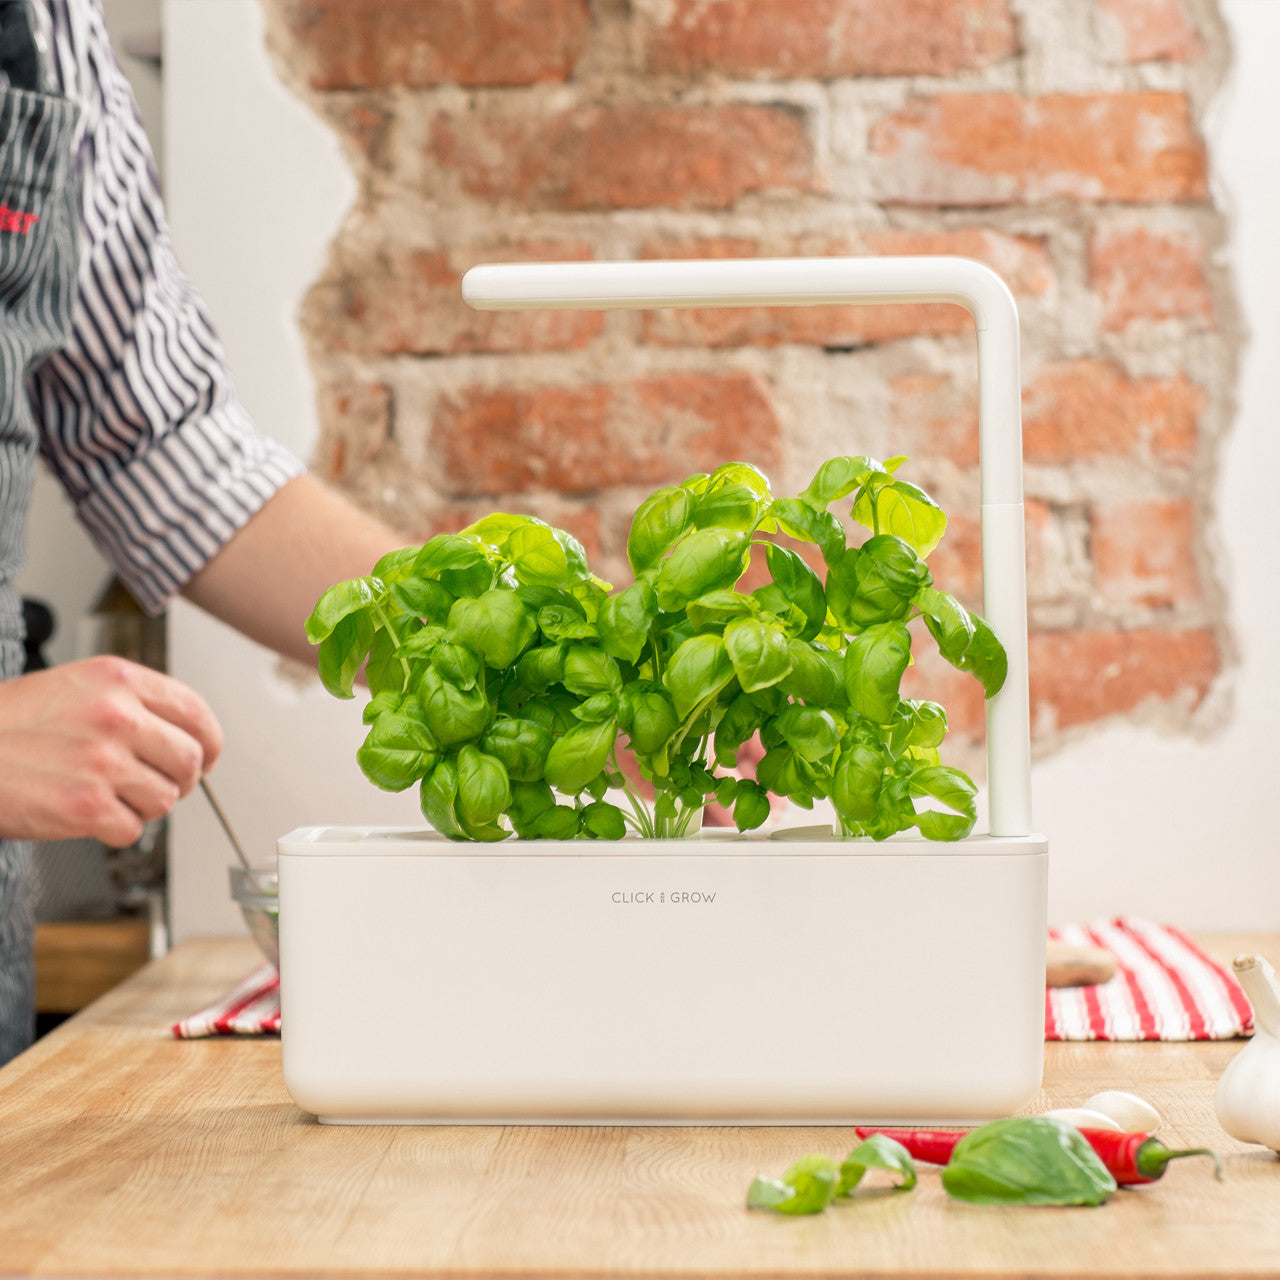 Click & Grow Smart Garden 3 - Grow fresh food at home!